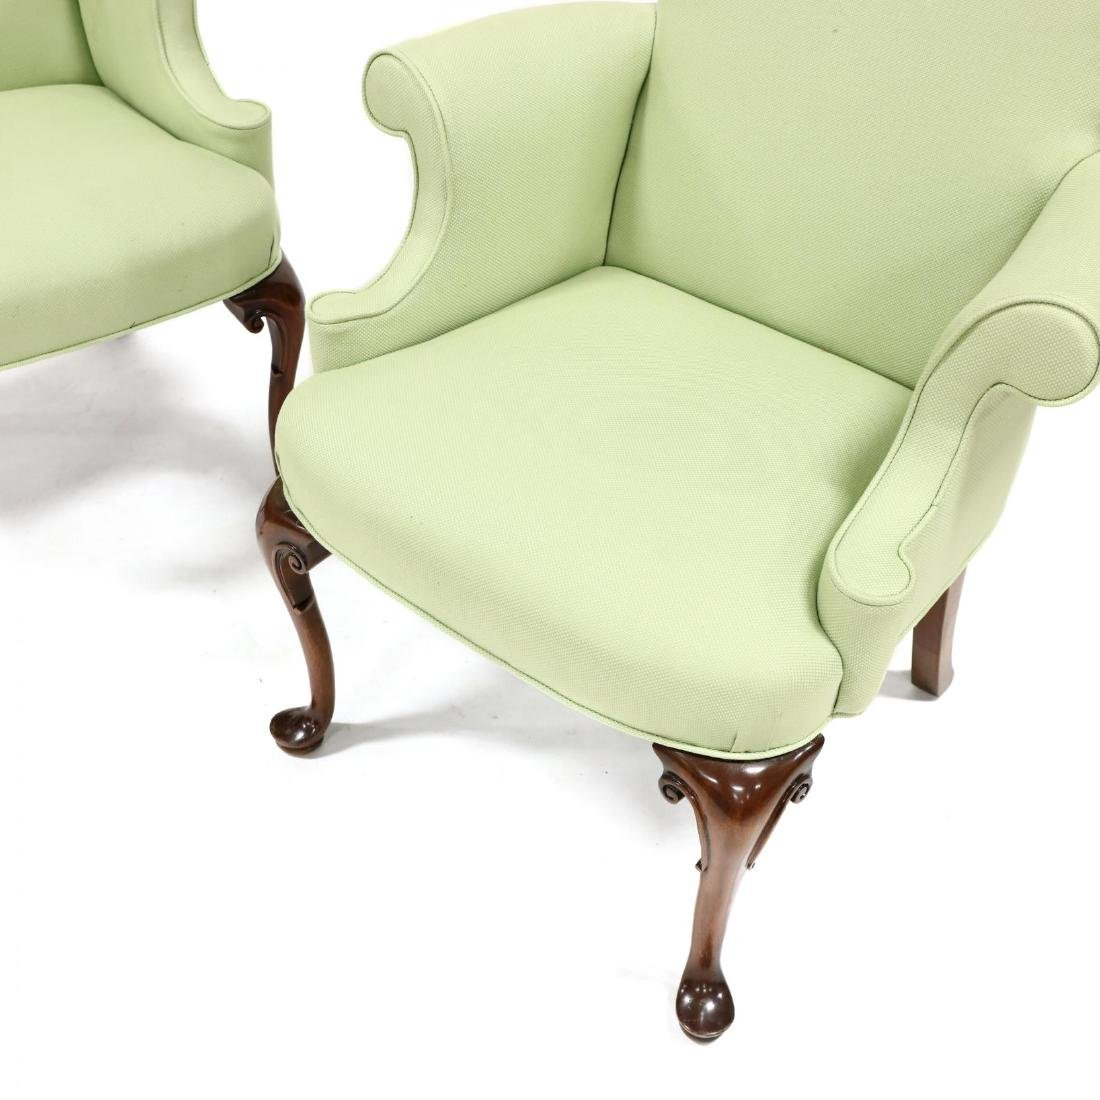 Pair of Queen Anne Style Lolling Chairs - 2